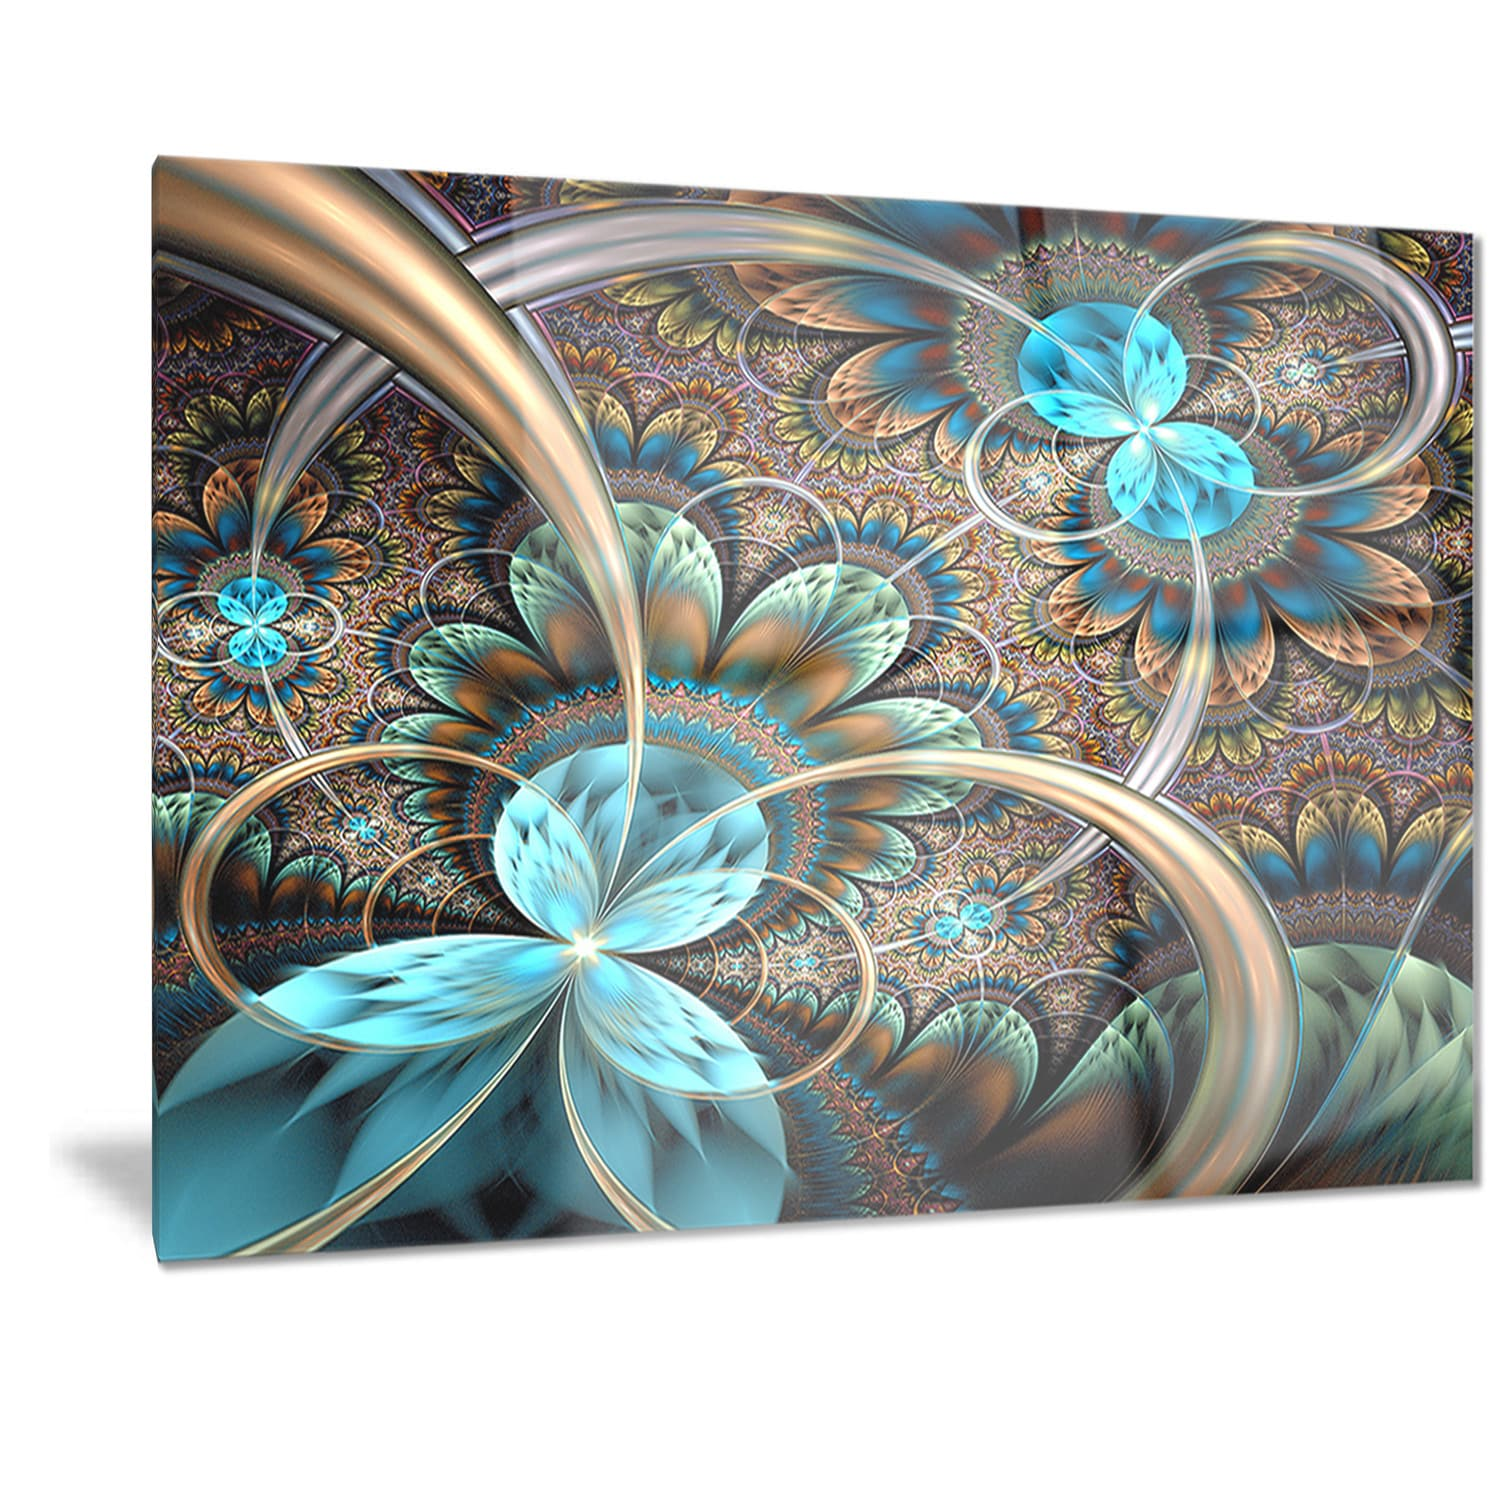 Blue Metal Wall Art Pleasing Designart 'light Blue Fractal Flower' Digital Art Floral Metal Inspiration